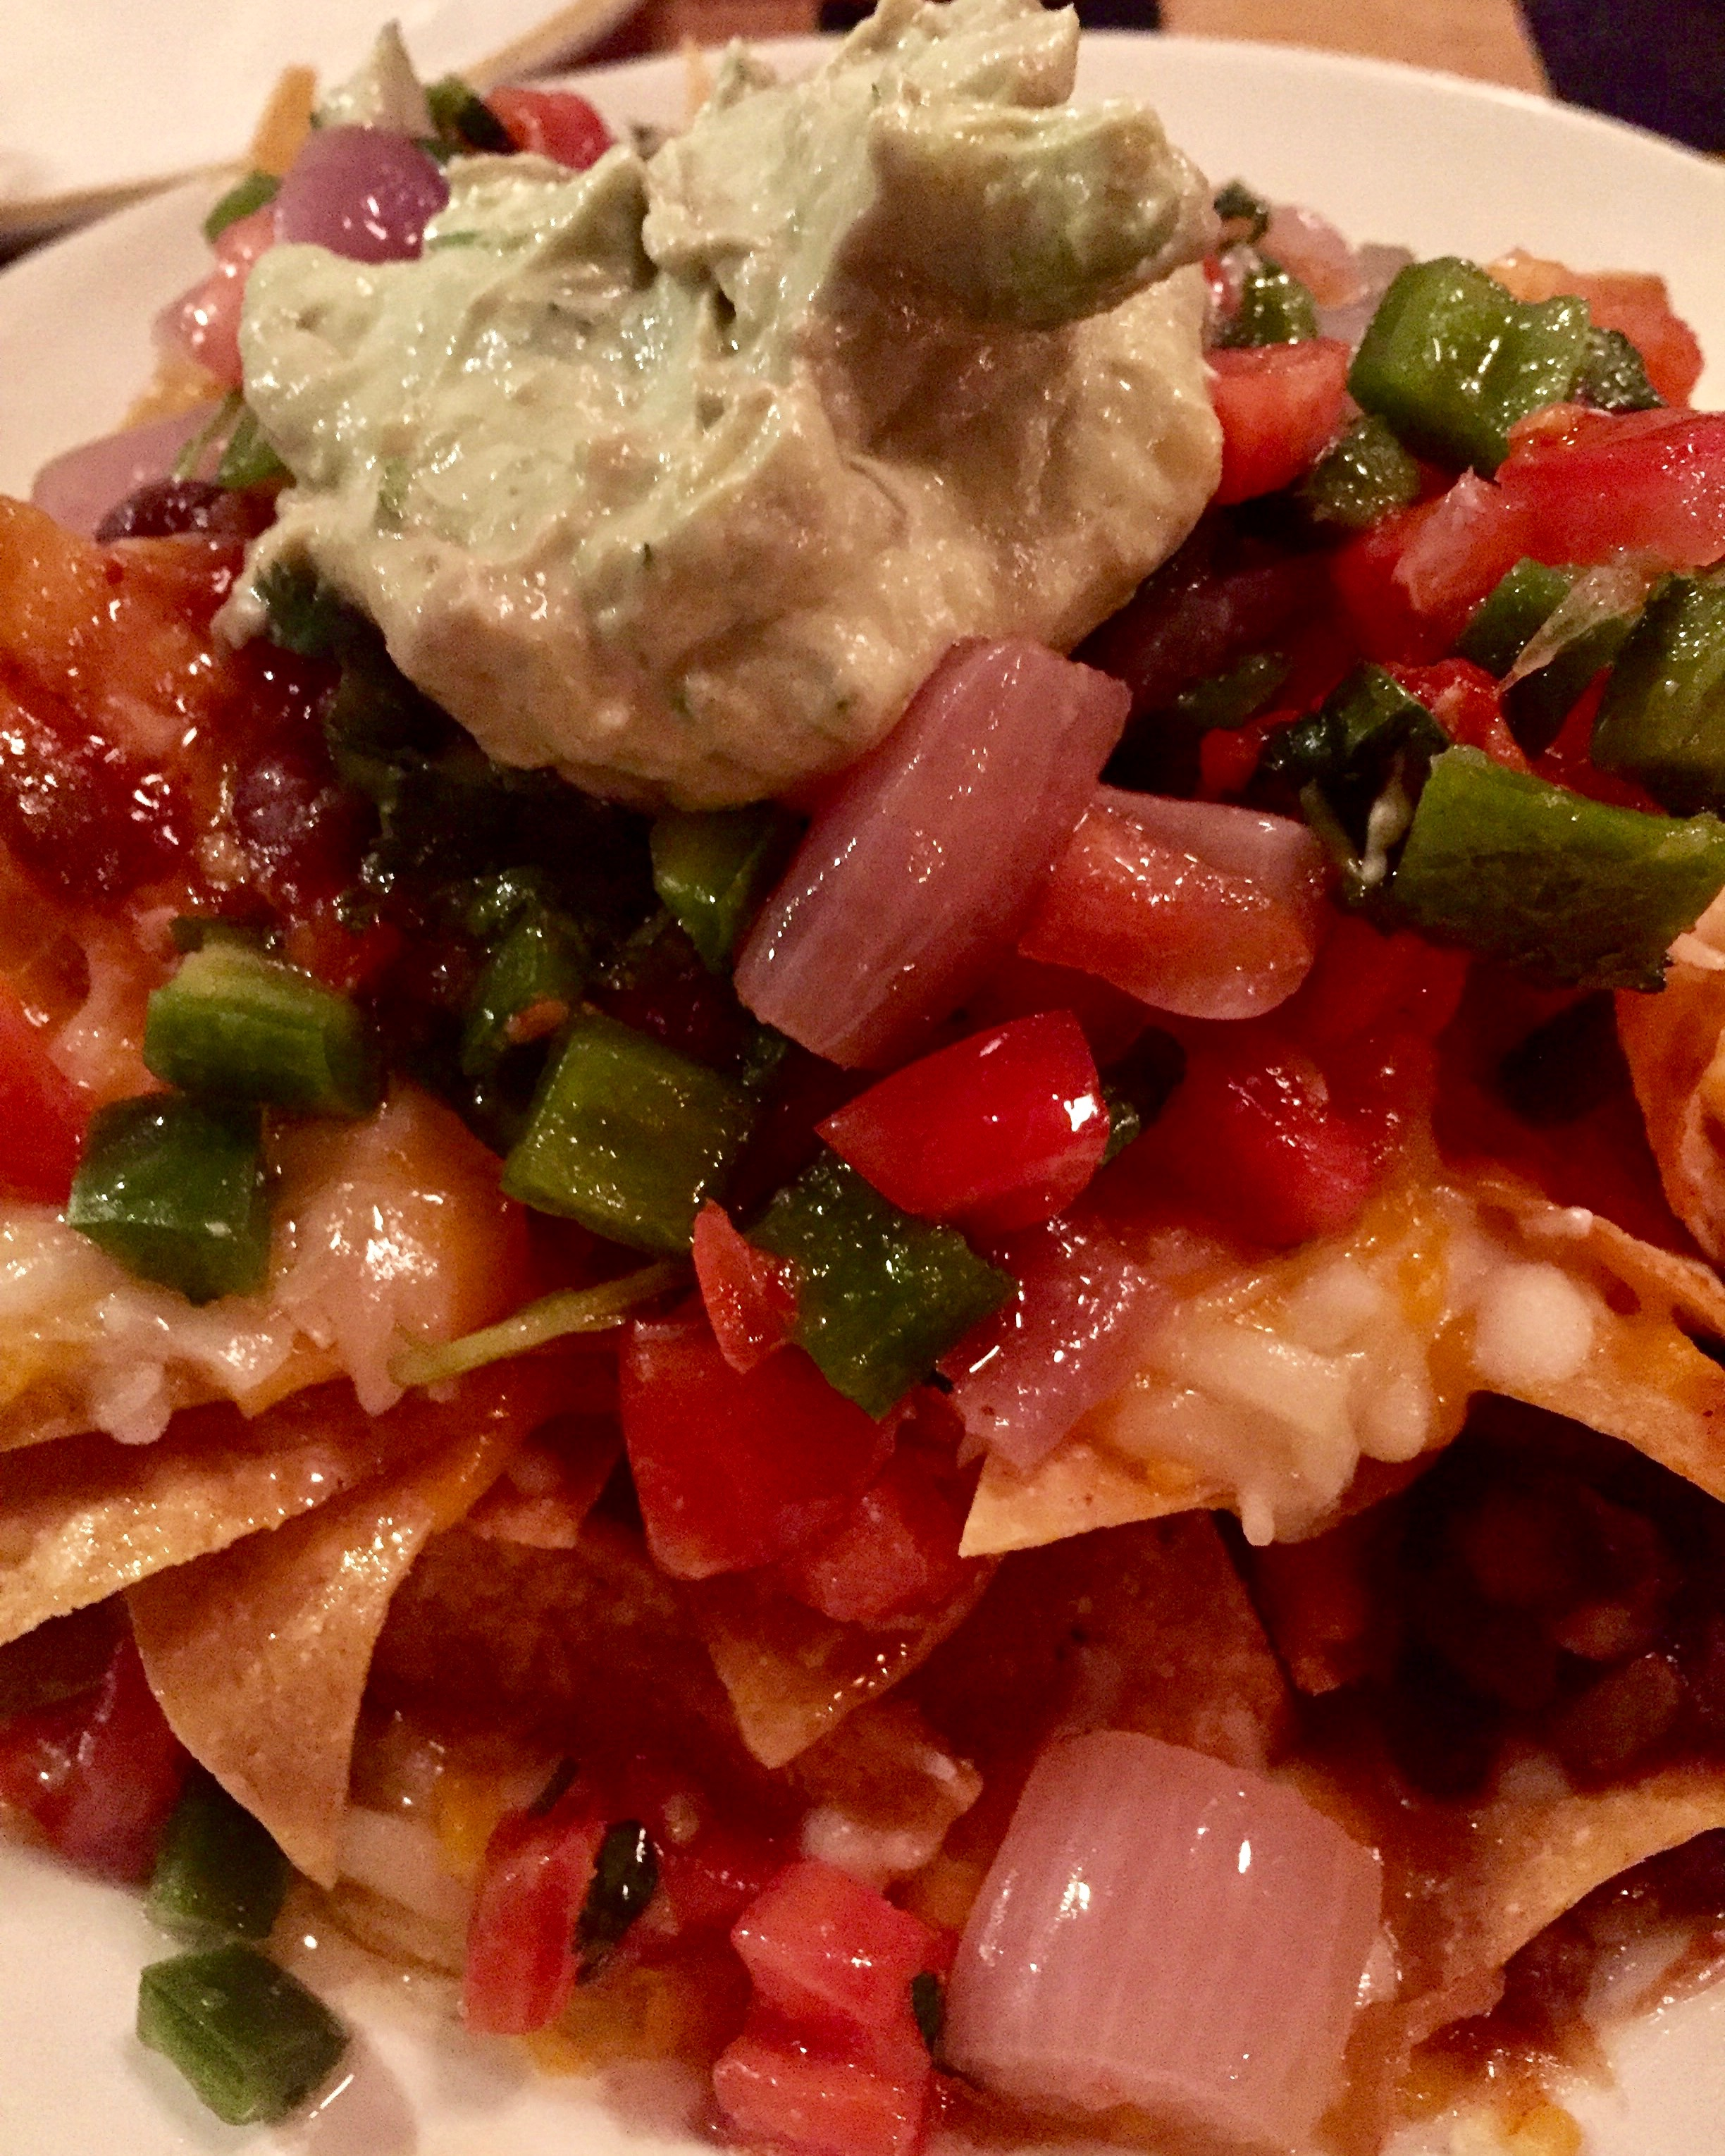 Nacho's at Kerhonkson's Rough Cut Brewing Co.